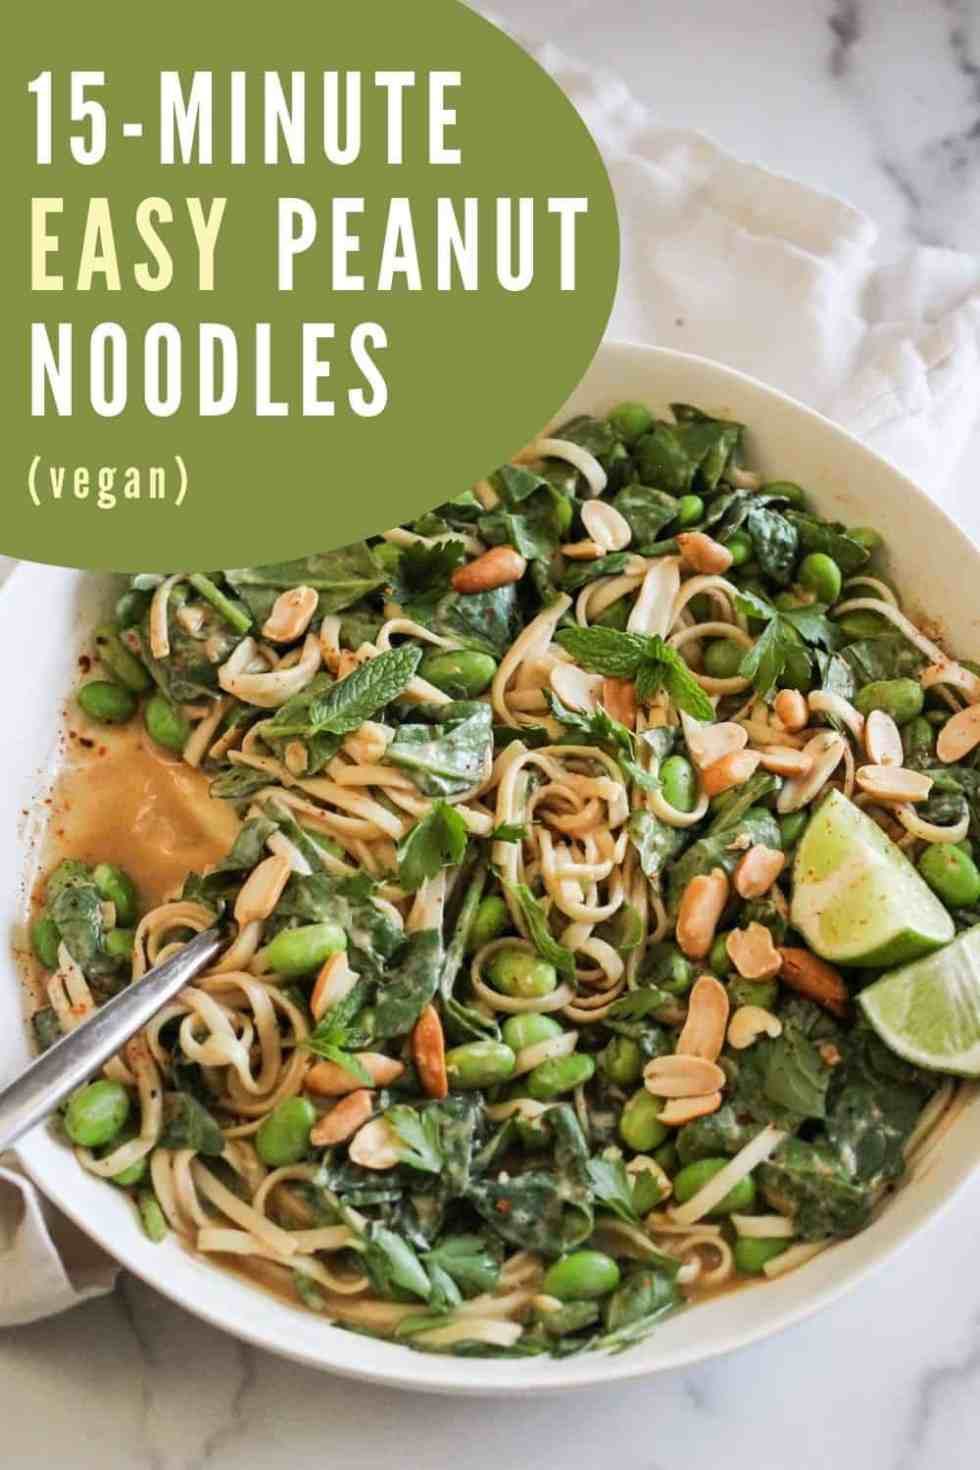 """Edamame noodles in a white bowl with green and whtie text that reads """"15-Minute Easy Peanut Noodles (Vegan)."""""""